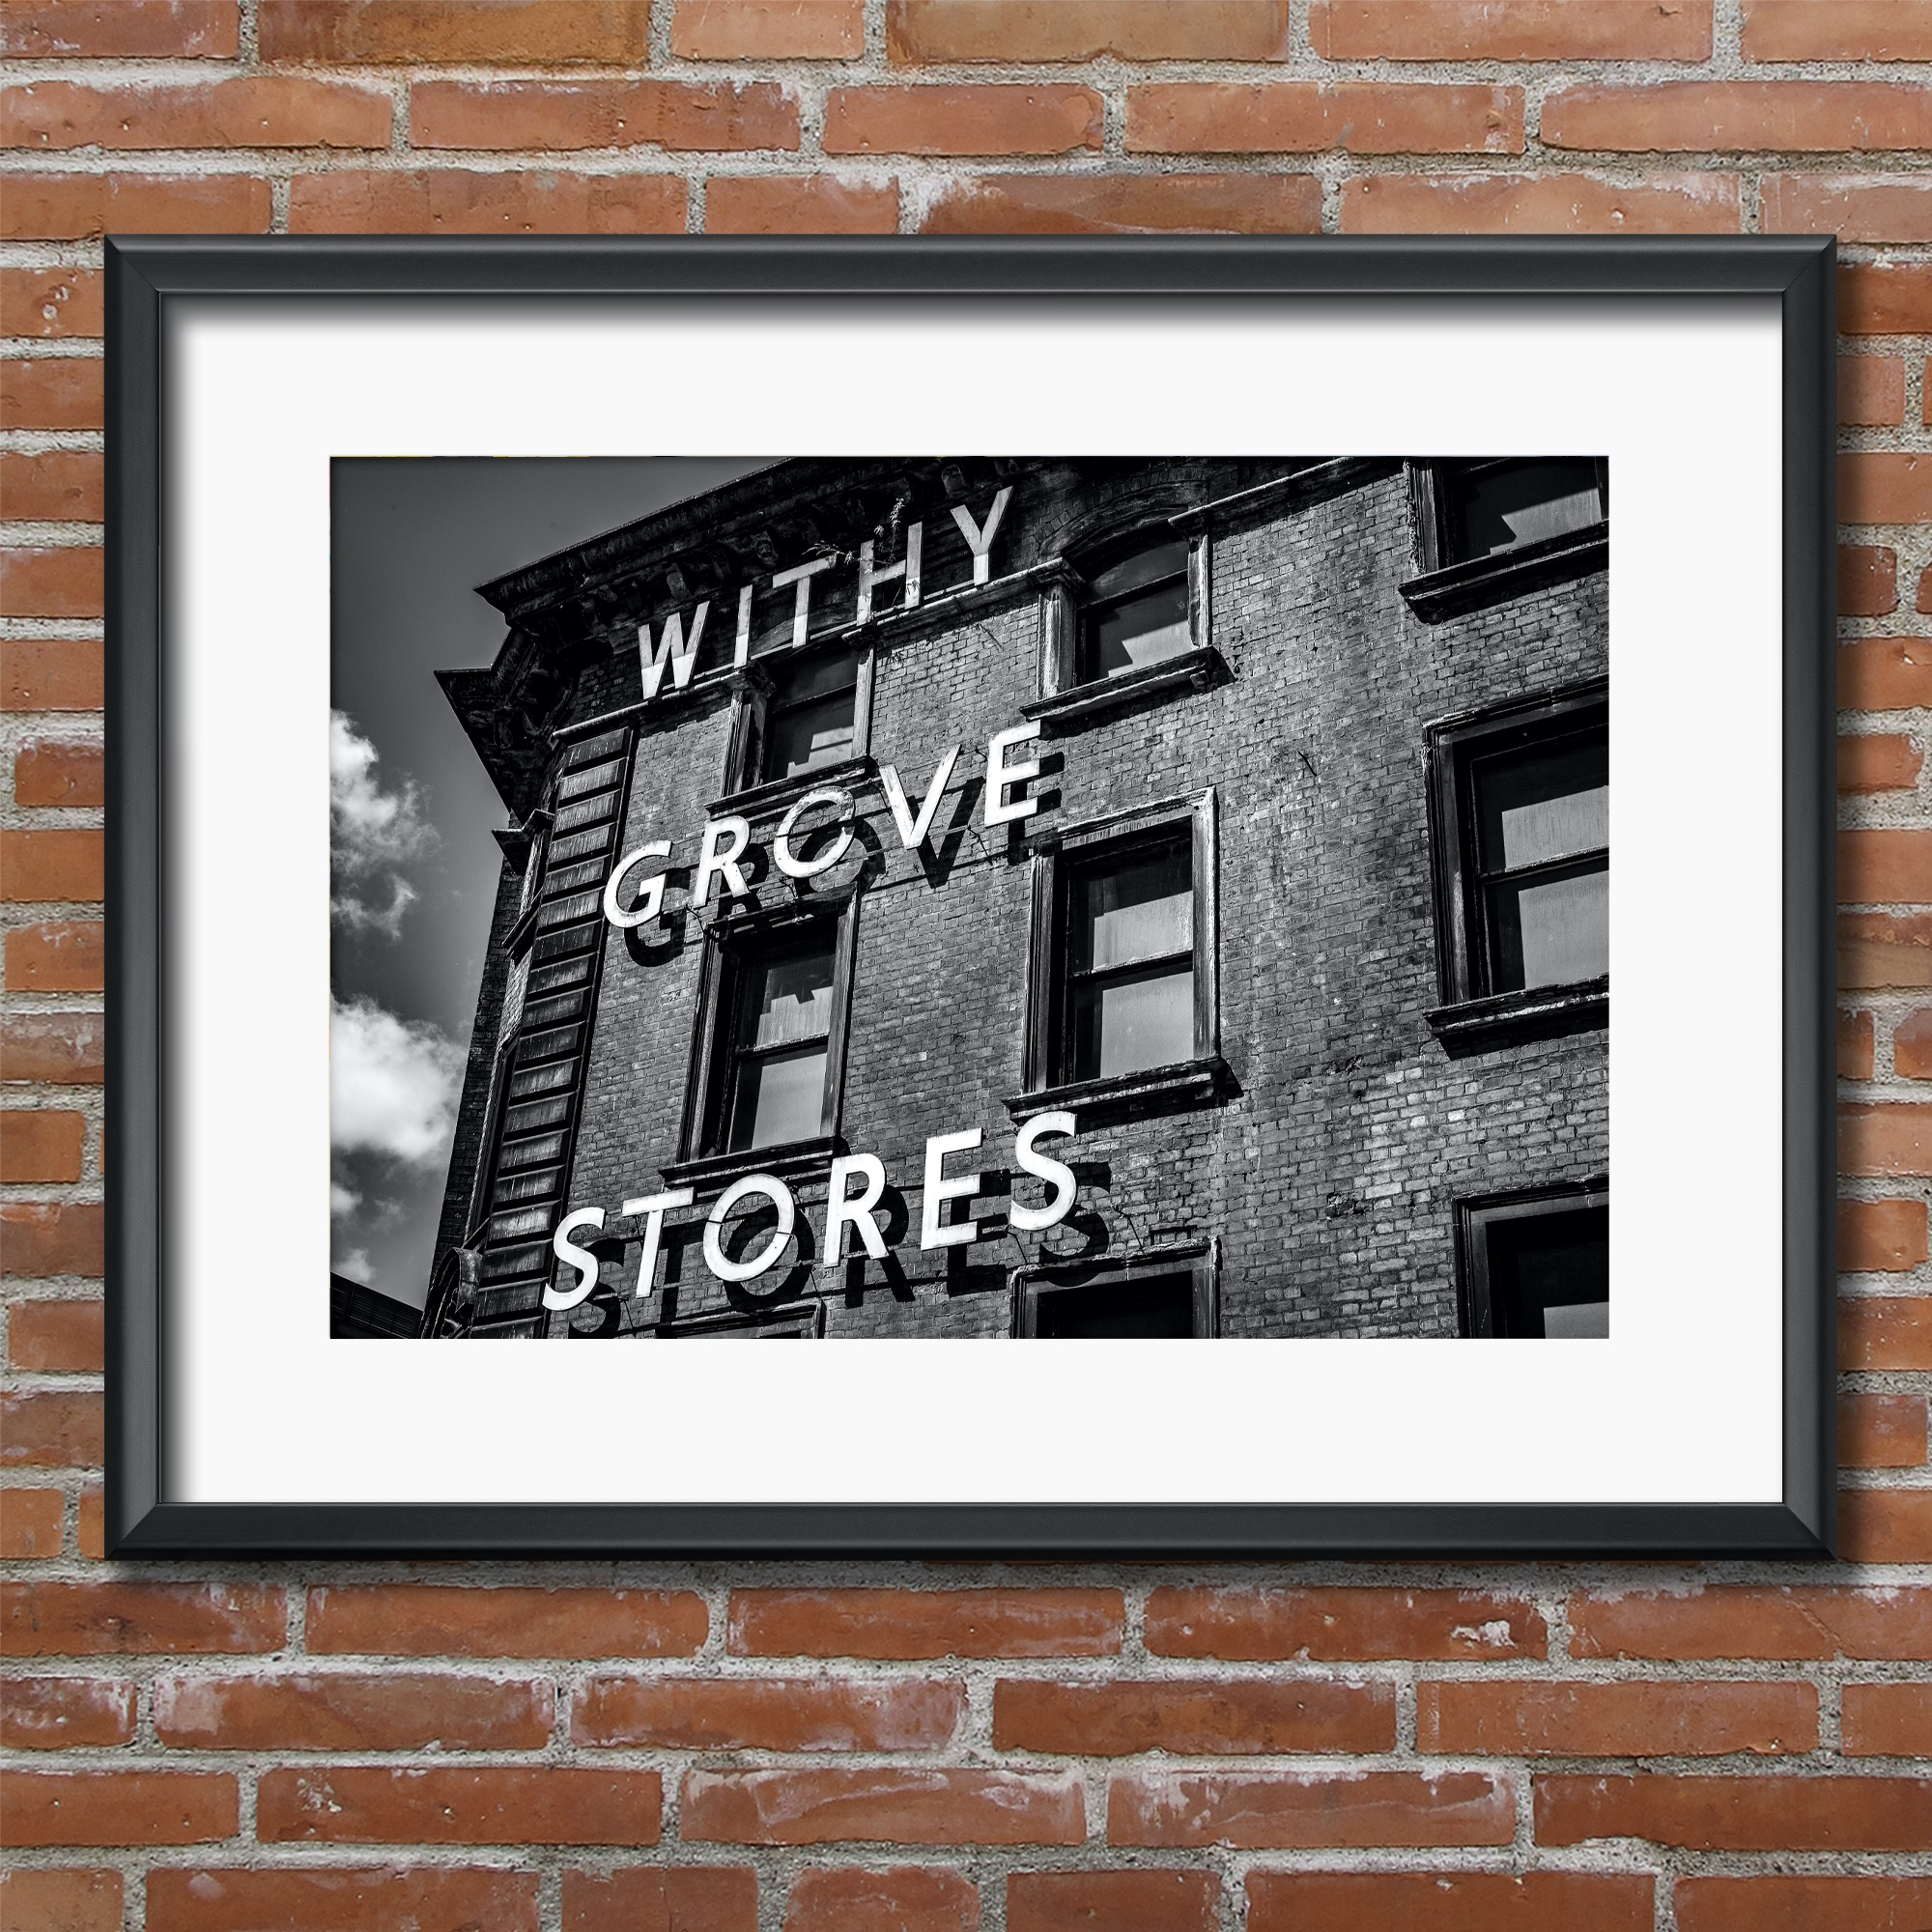 Withy Grove Store Manchester.